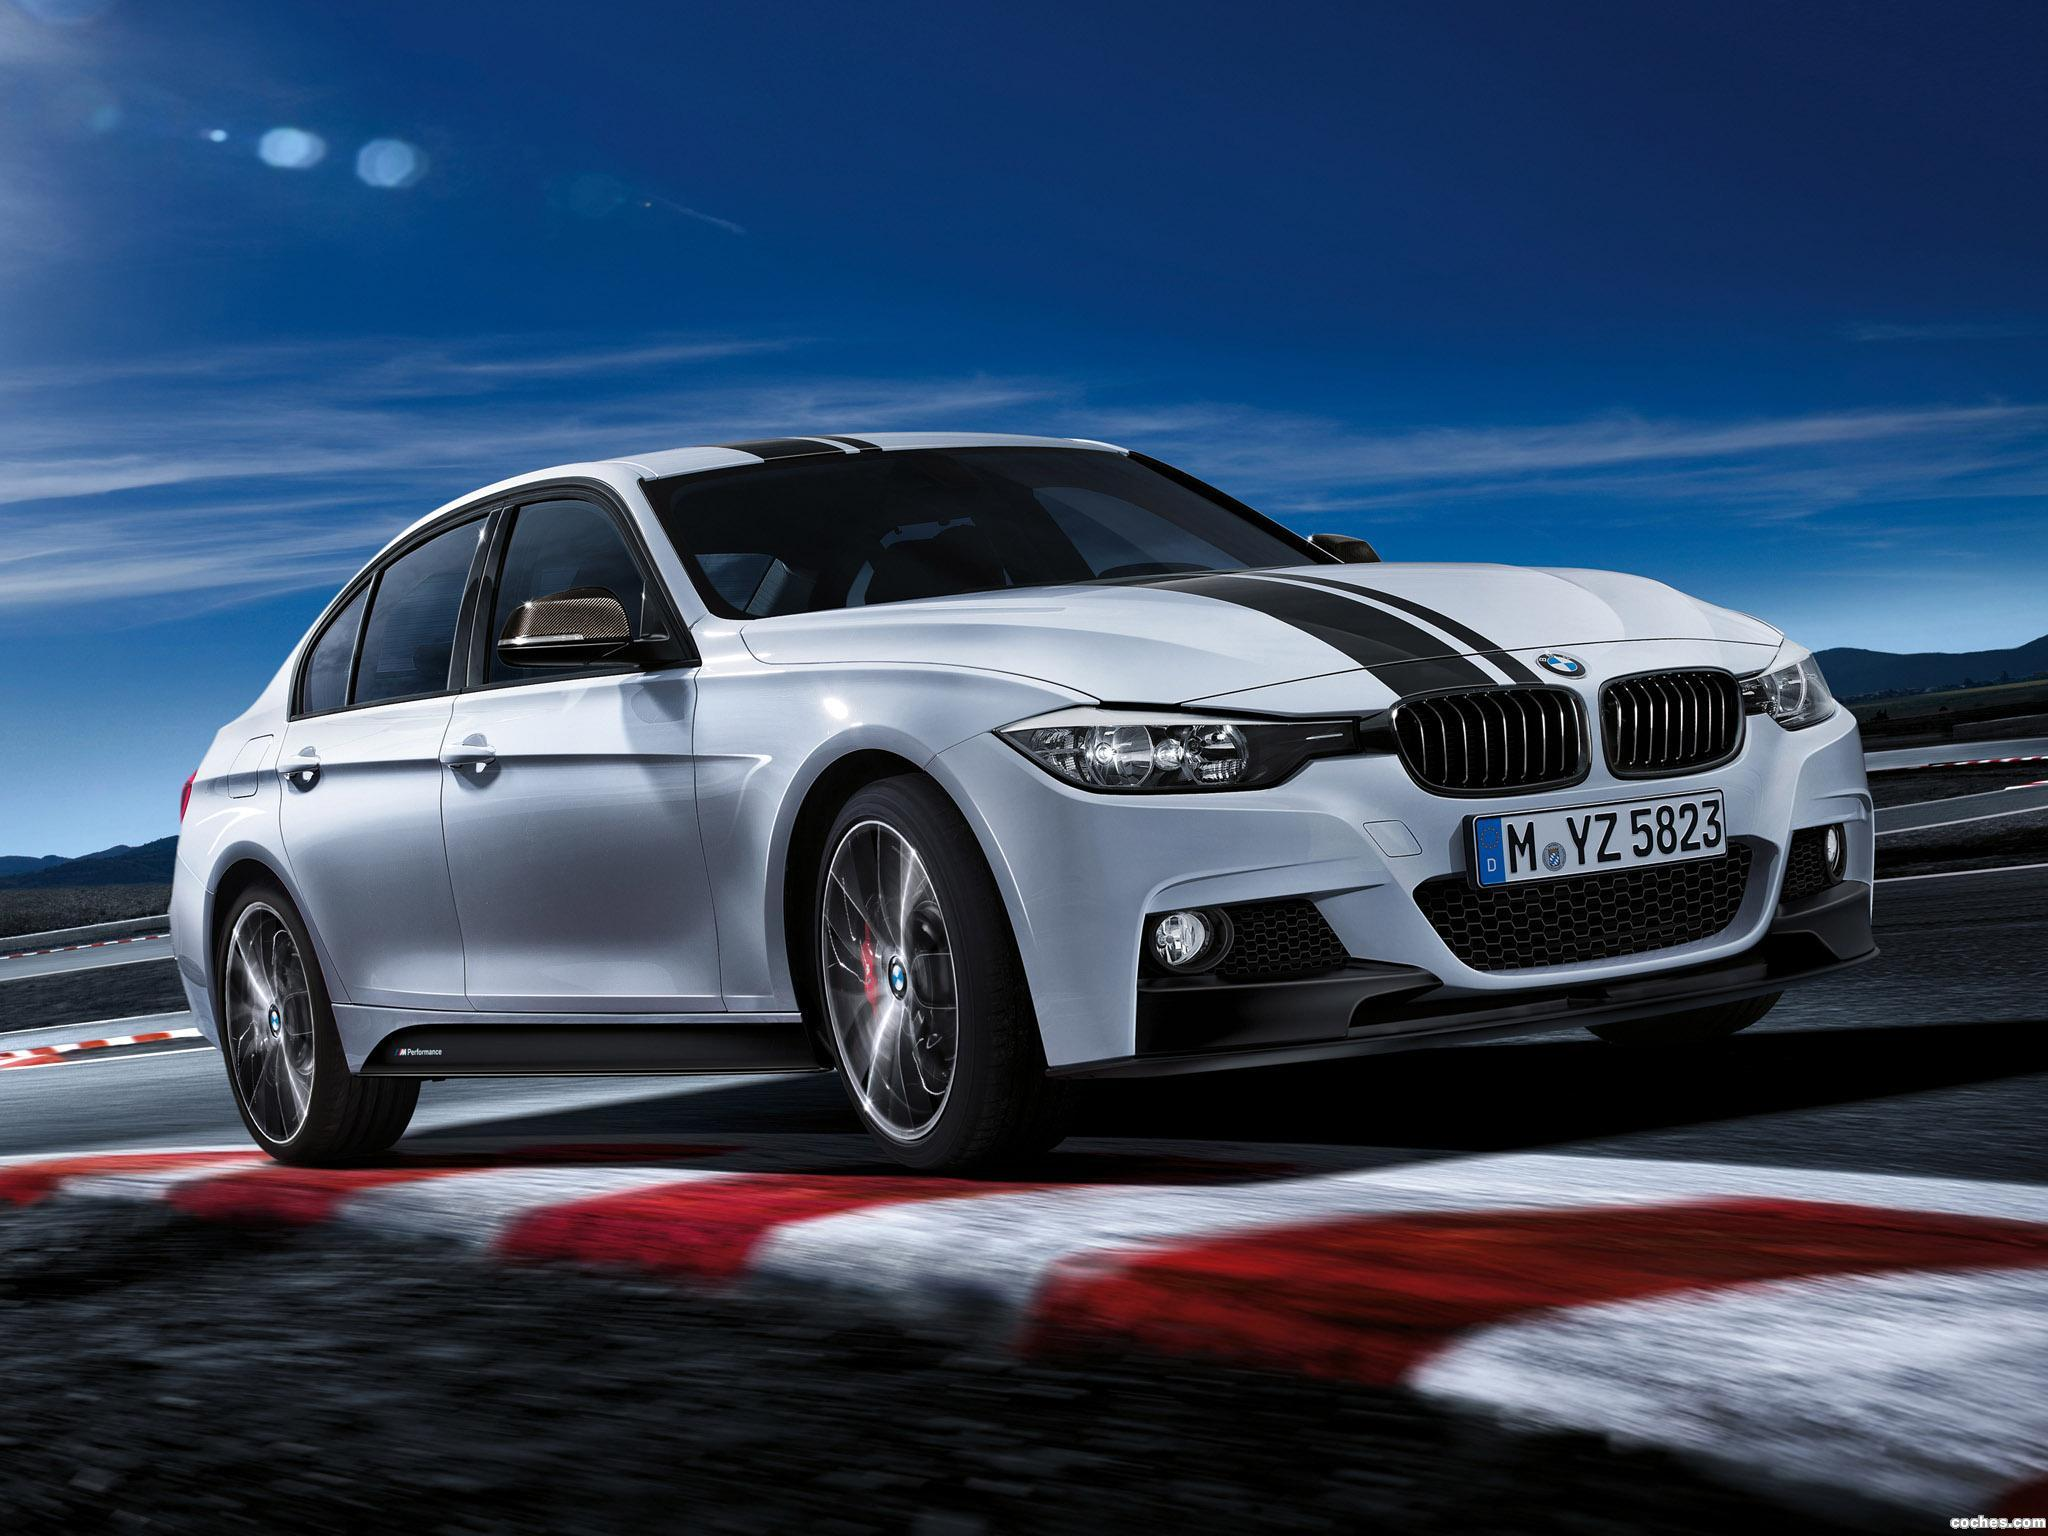 2014 f32 m3 coupe submited images